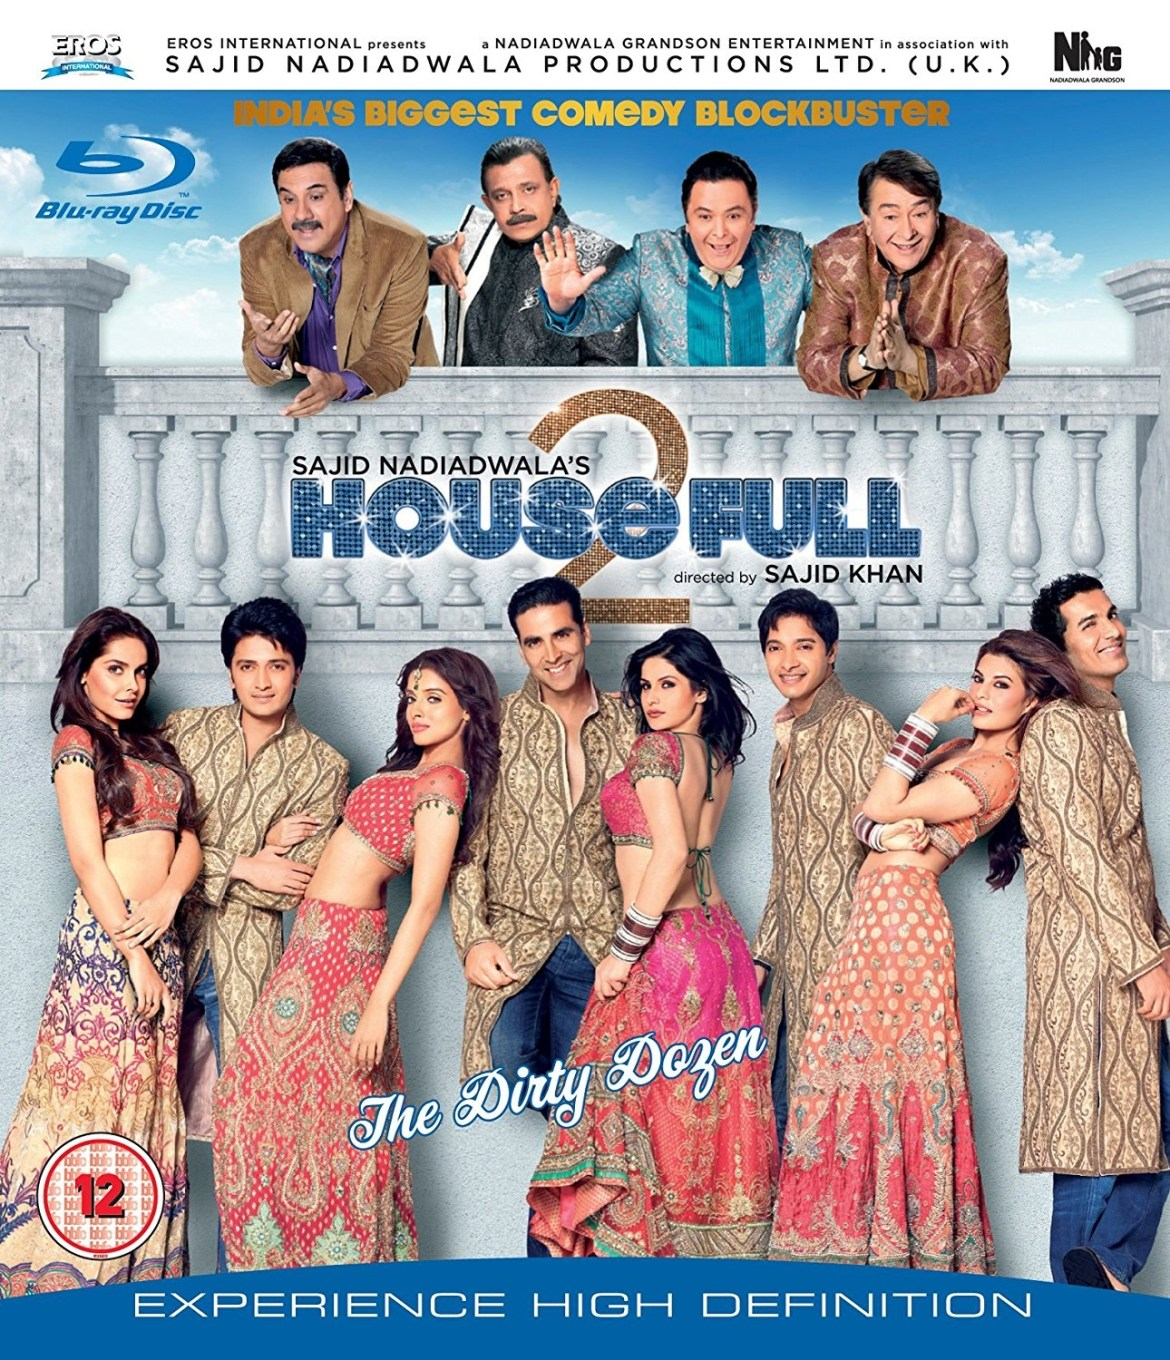 Housefull 2 Movie Dialogues (Famous Quotes)